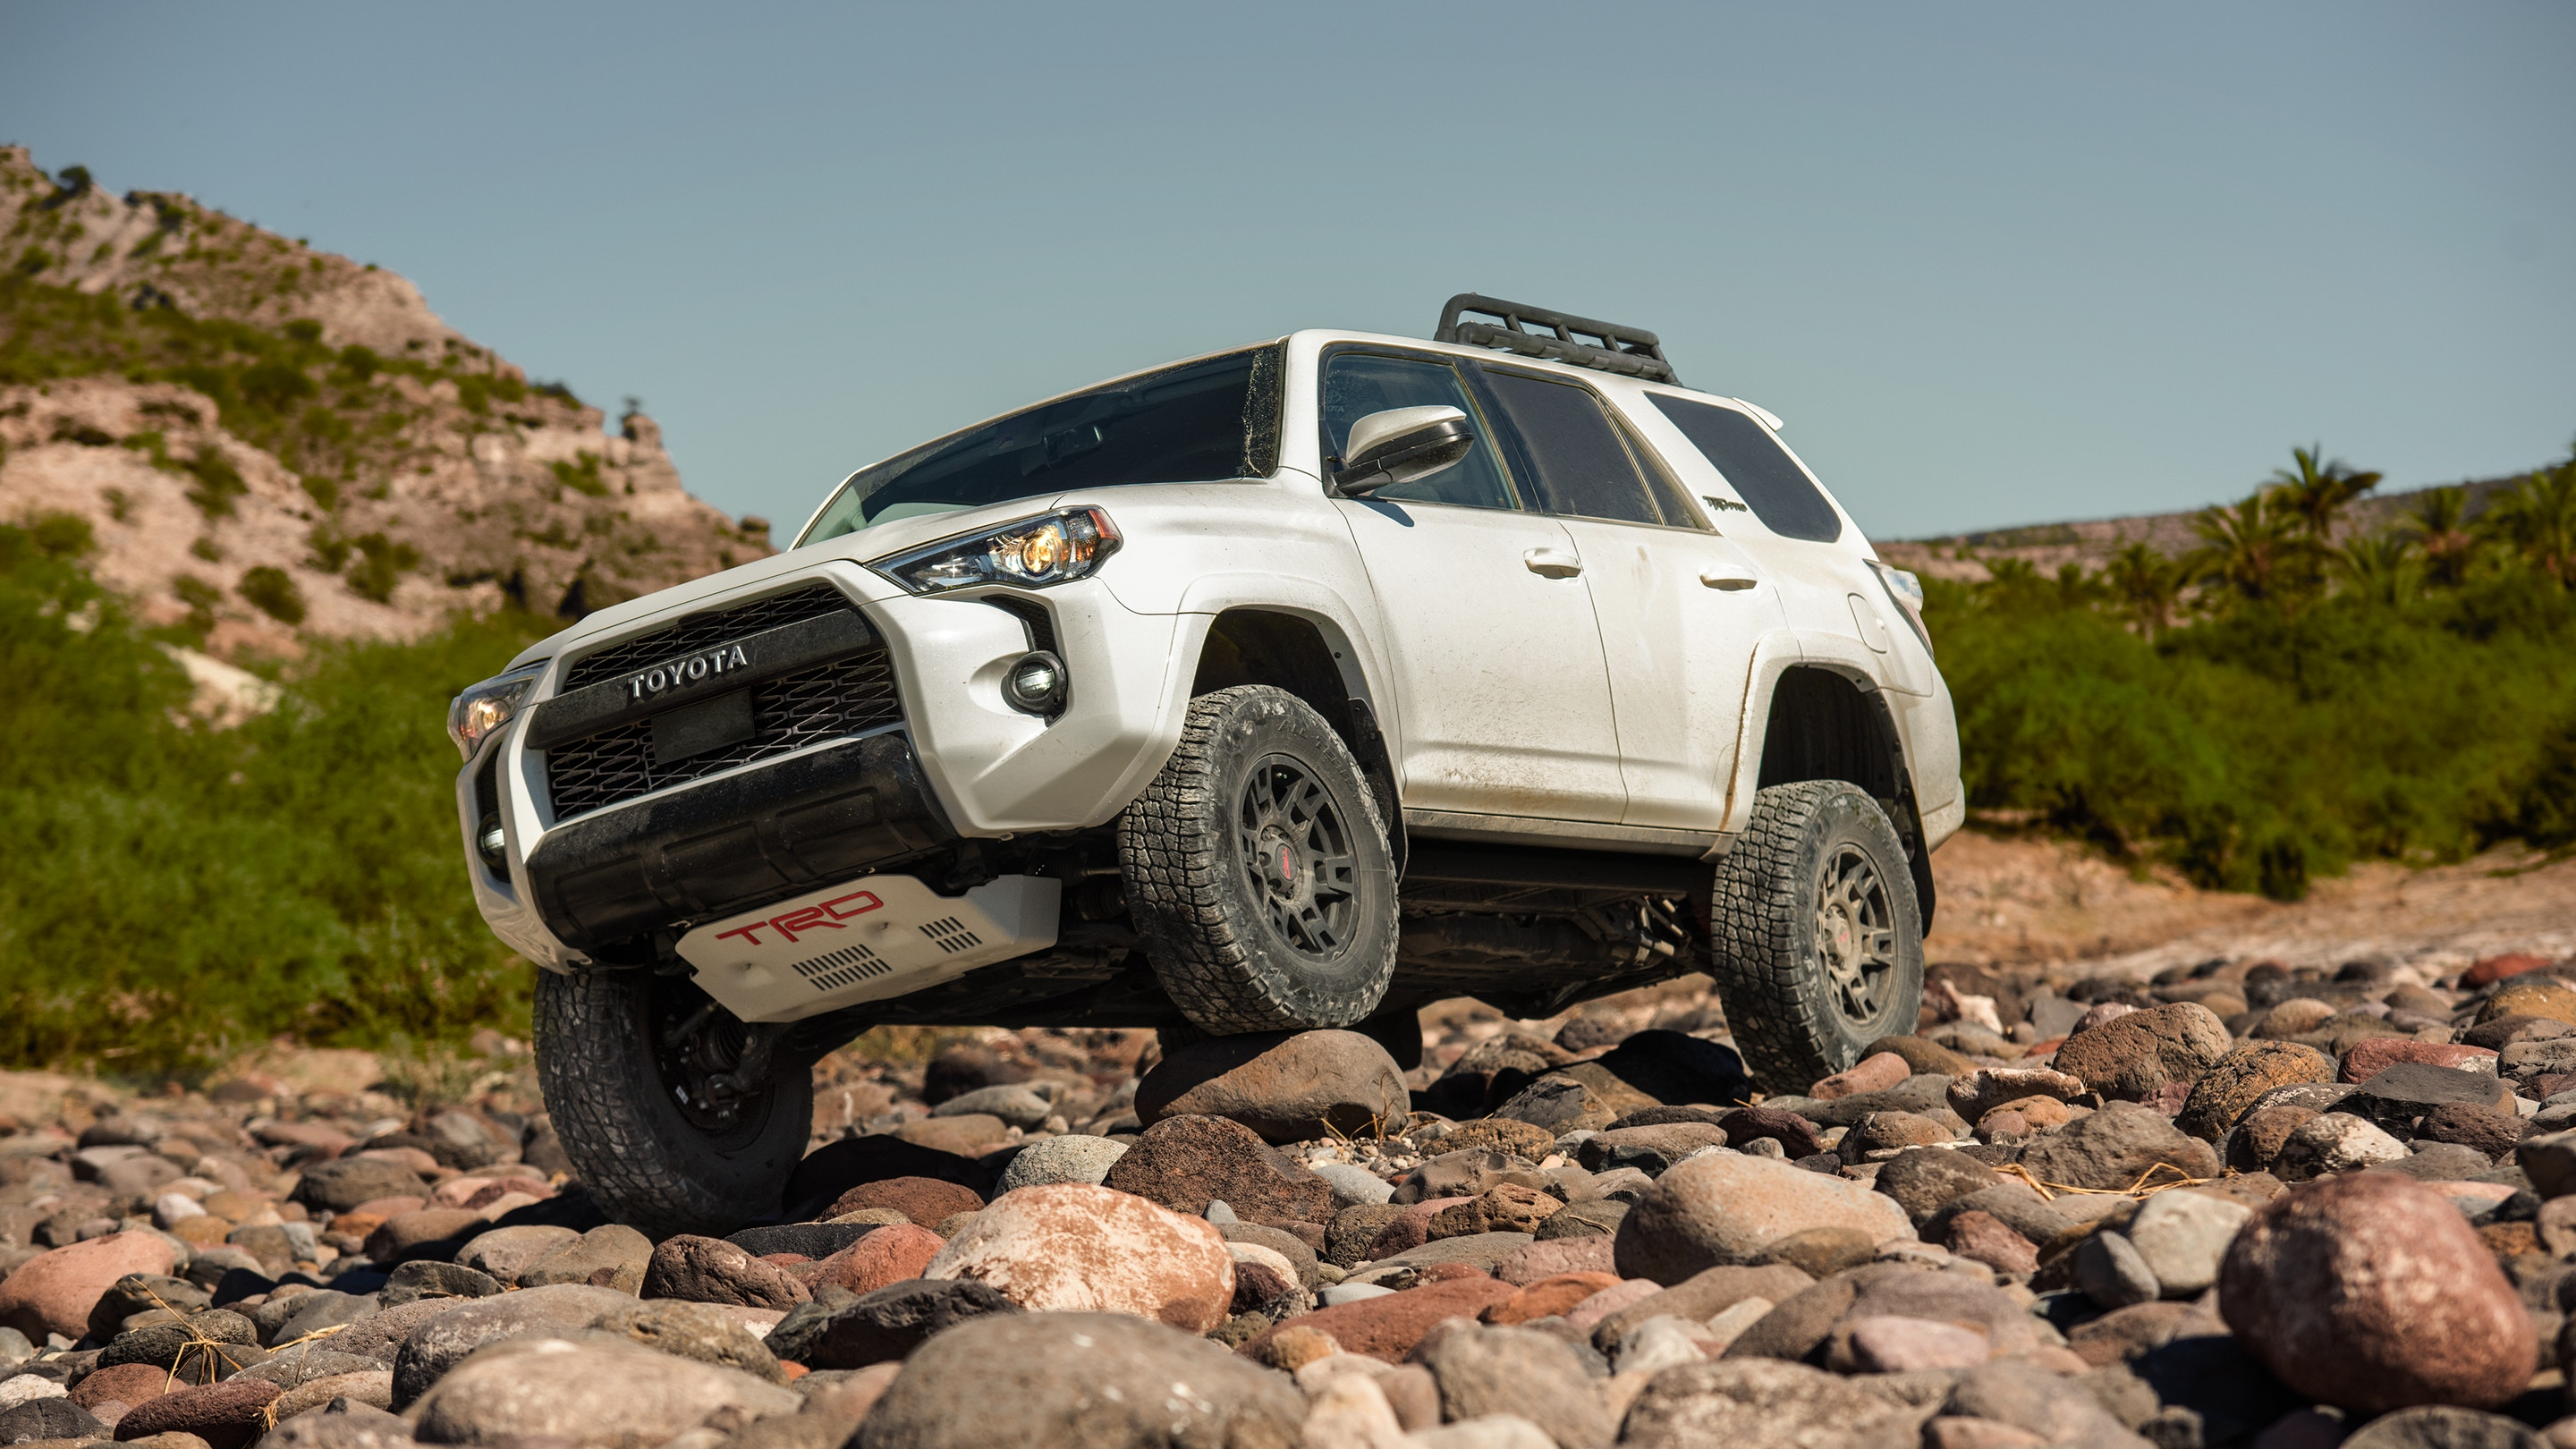 2020 Toyota 4Runner for Sale near Merriam, KS, 65740